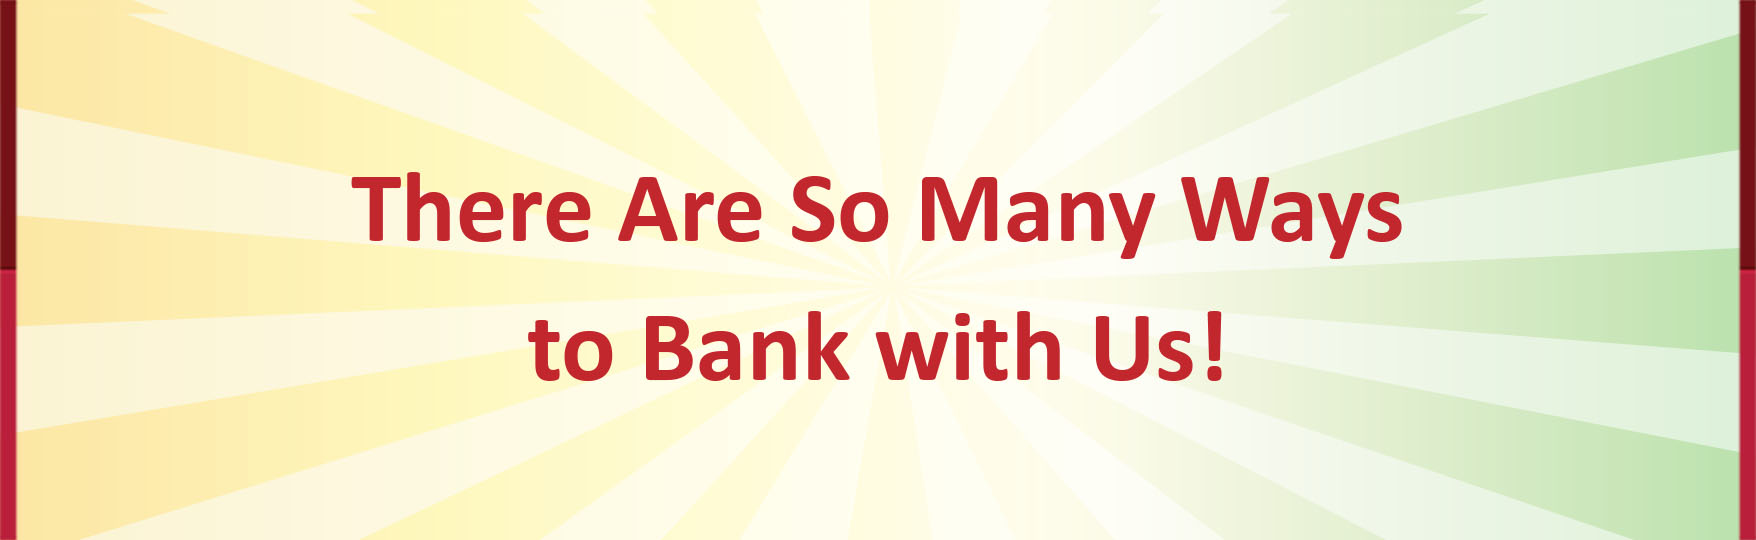 There are so many ways to bank with us!